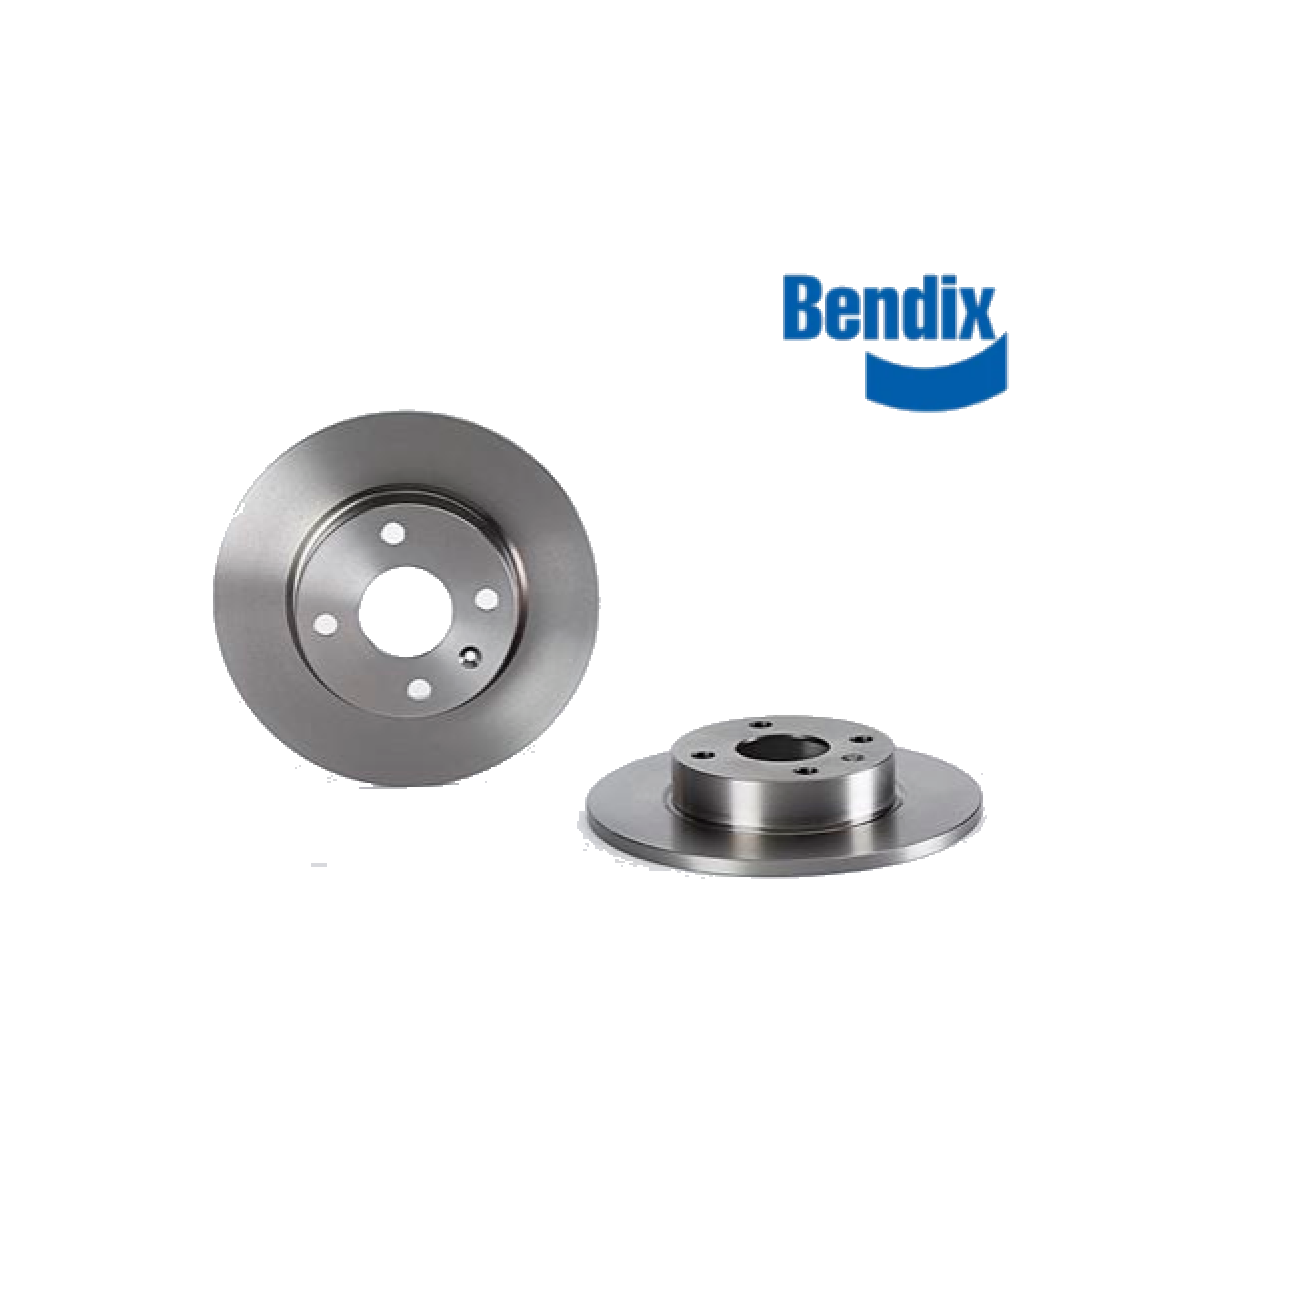 PAIR OF FRONT BRAKE DISCS OPEL CORSA - TIGRA - COMBO BENDIX FOR 9196592